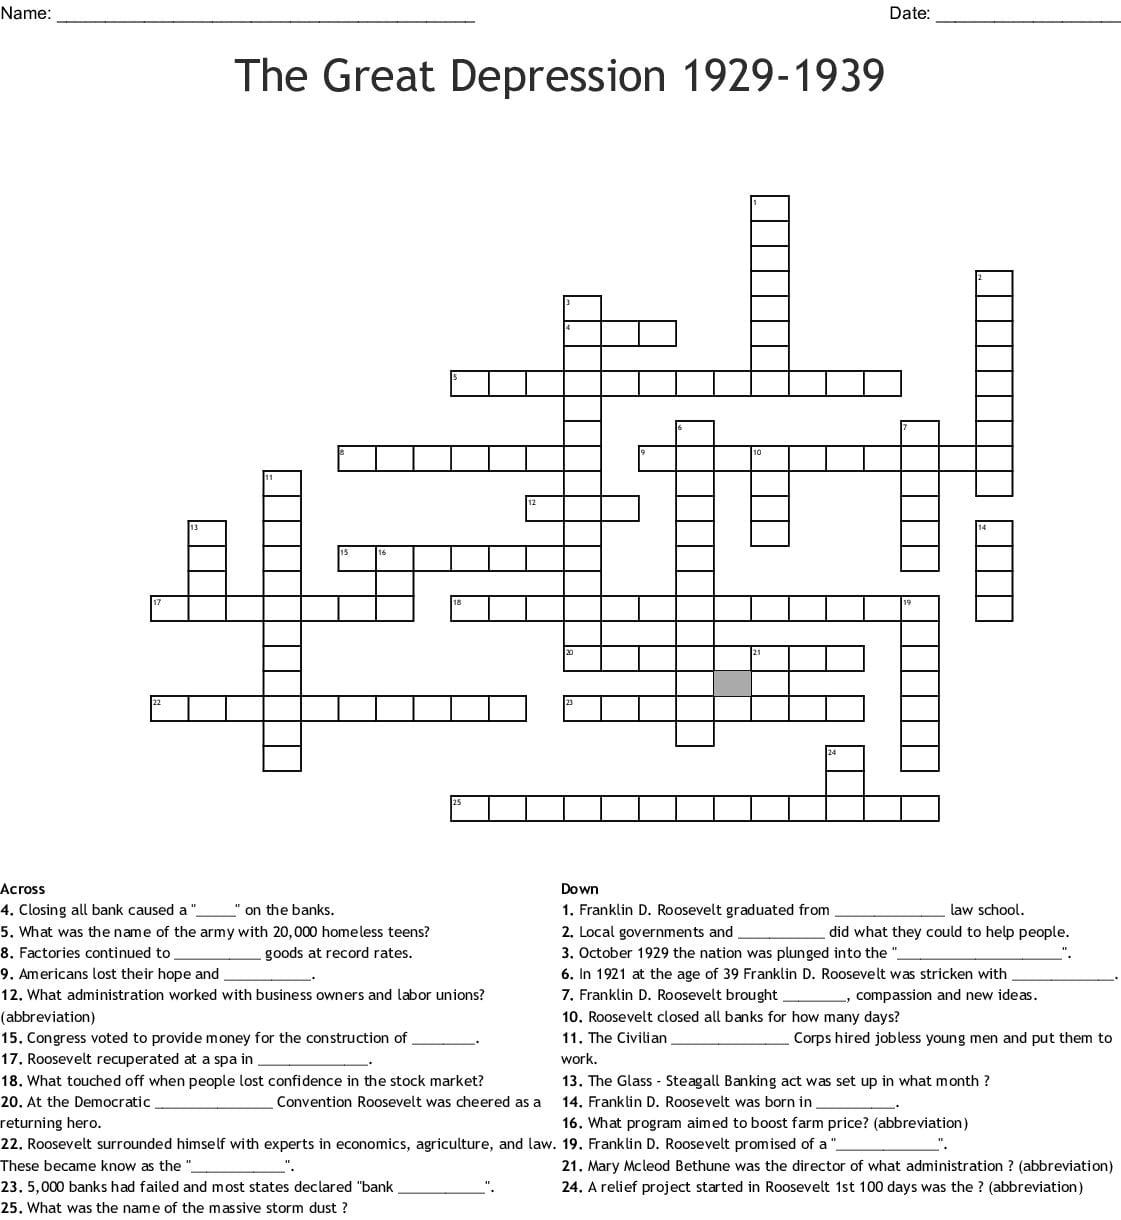 The Great Depression Worksheet Answer Key